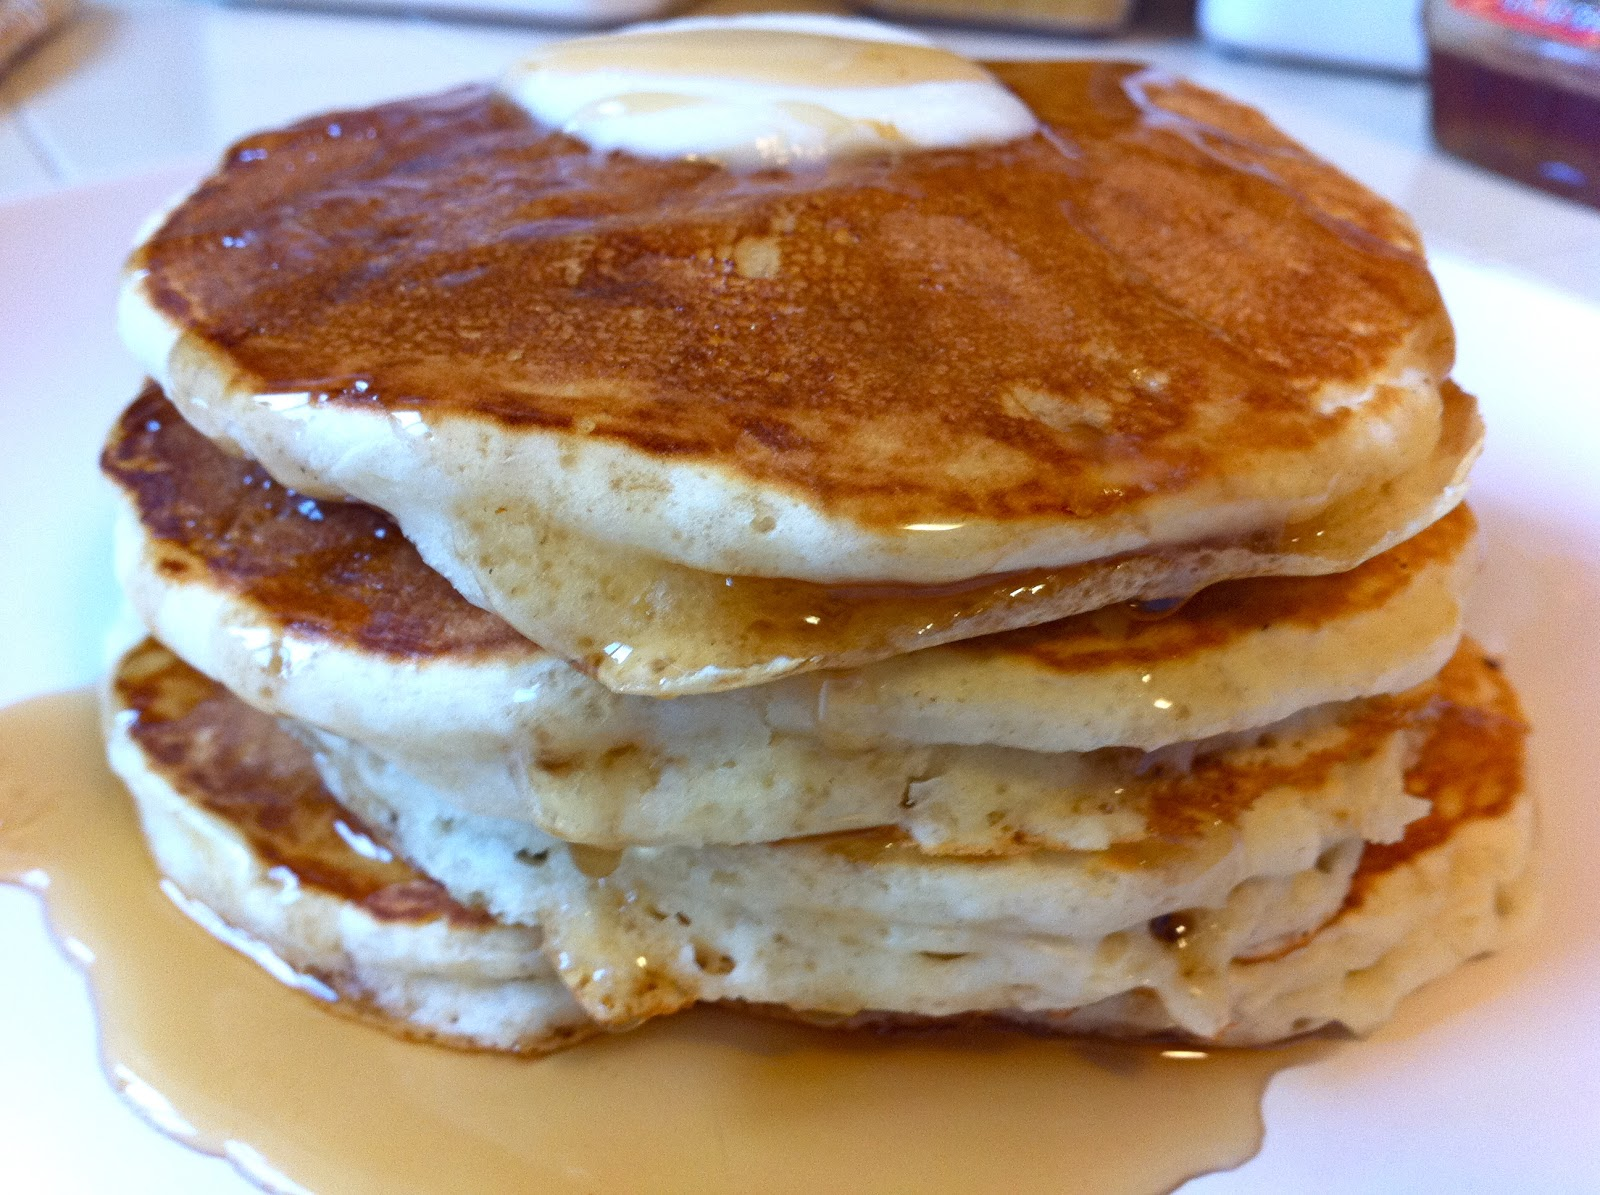 Mangoes & Lemons: Good Old-Fashioned Pancakes